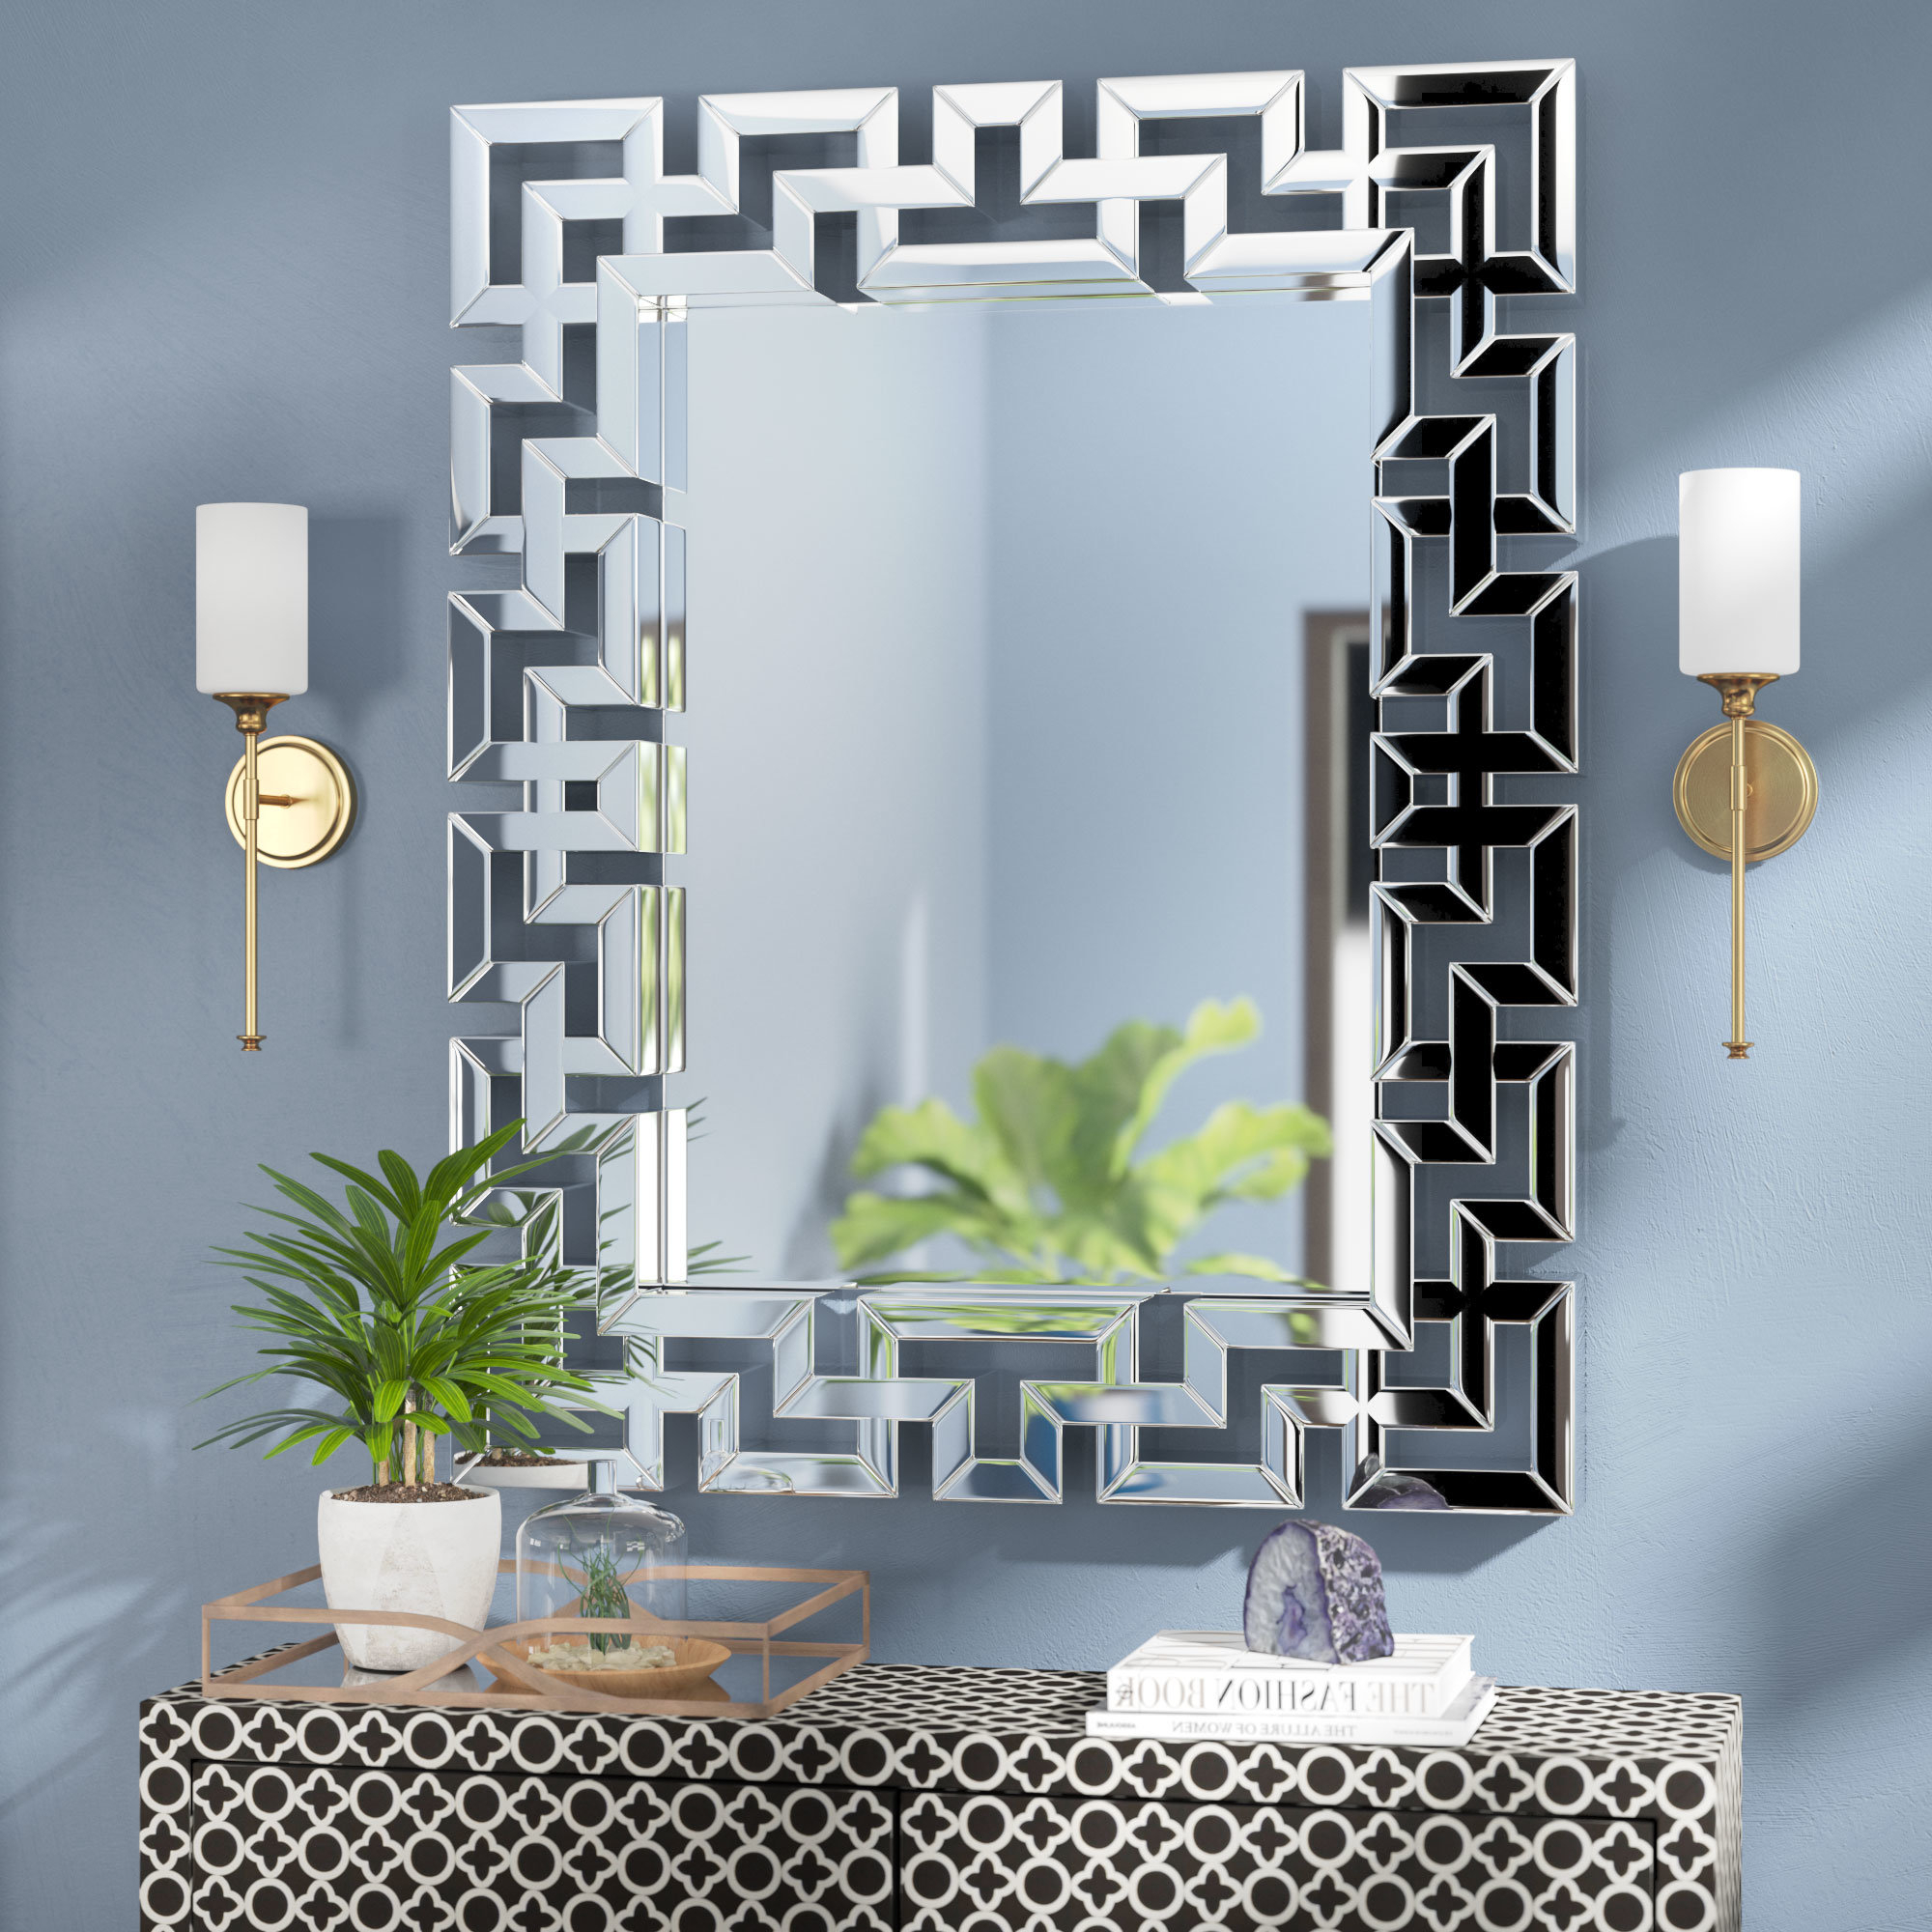 Caja Rectangle Glass Frame Wall Mirrors Pertaining To Favorite Willa Arlo Interiors Rectangle Ornate Geometric Wall Mirror (View 7 of 20)